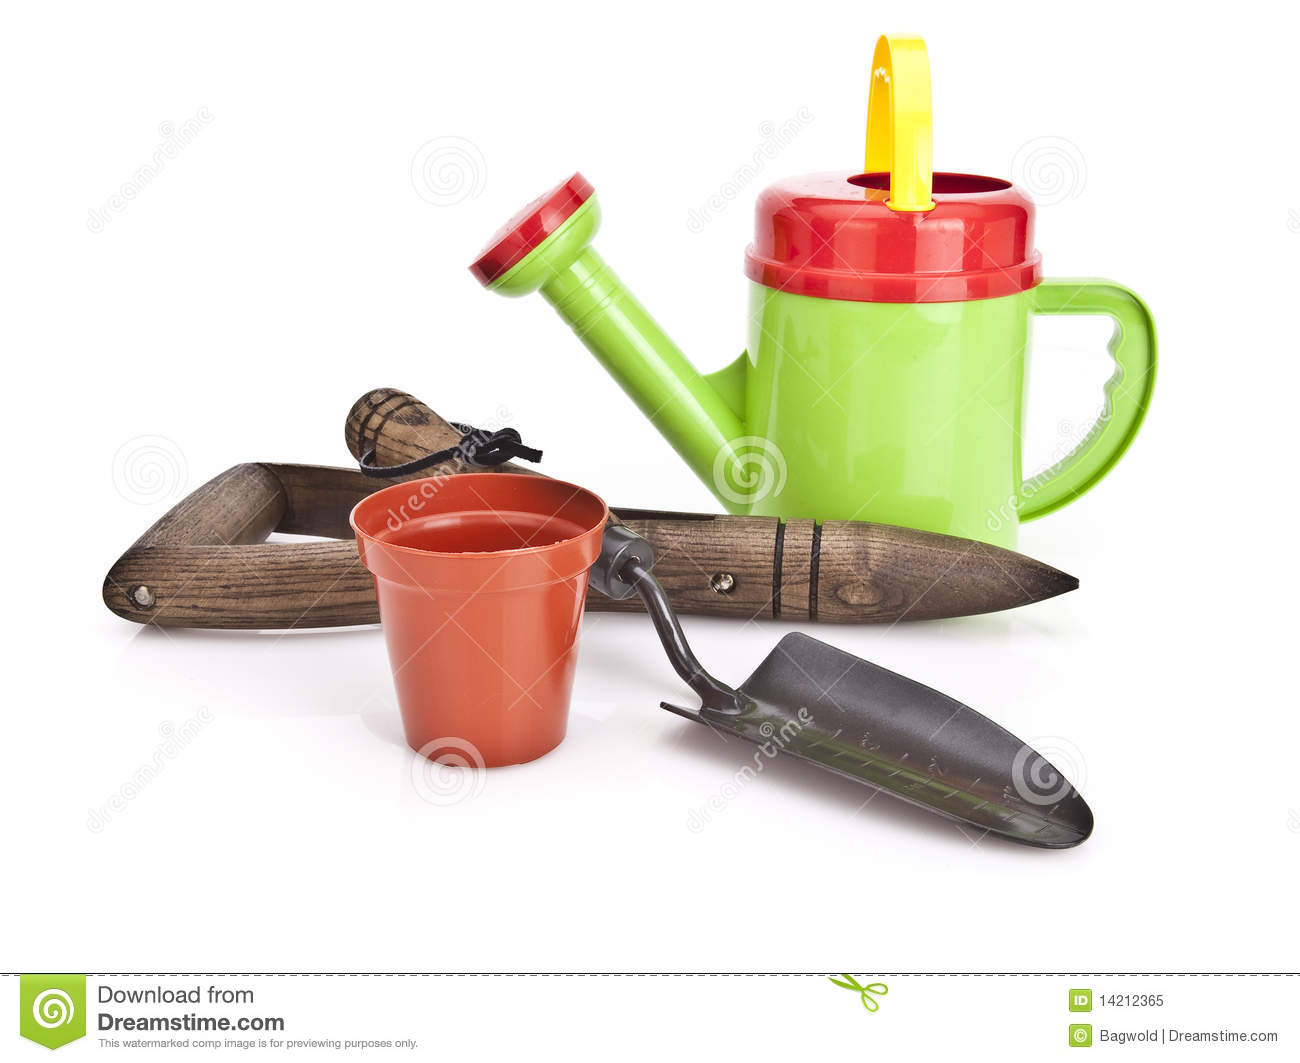 Gardening tools royalty free stock photo image 14212365 for Gardening tools watering